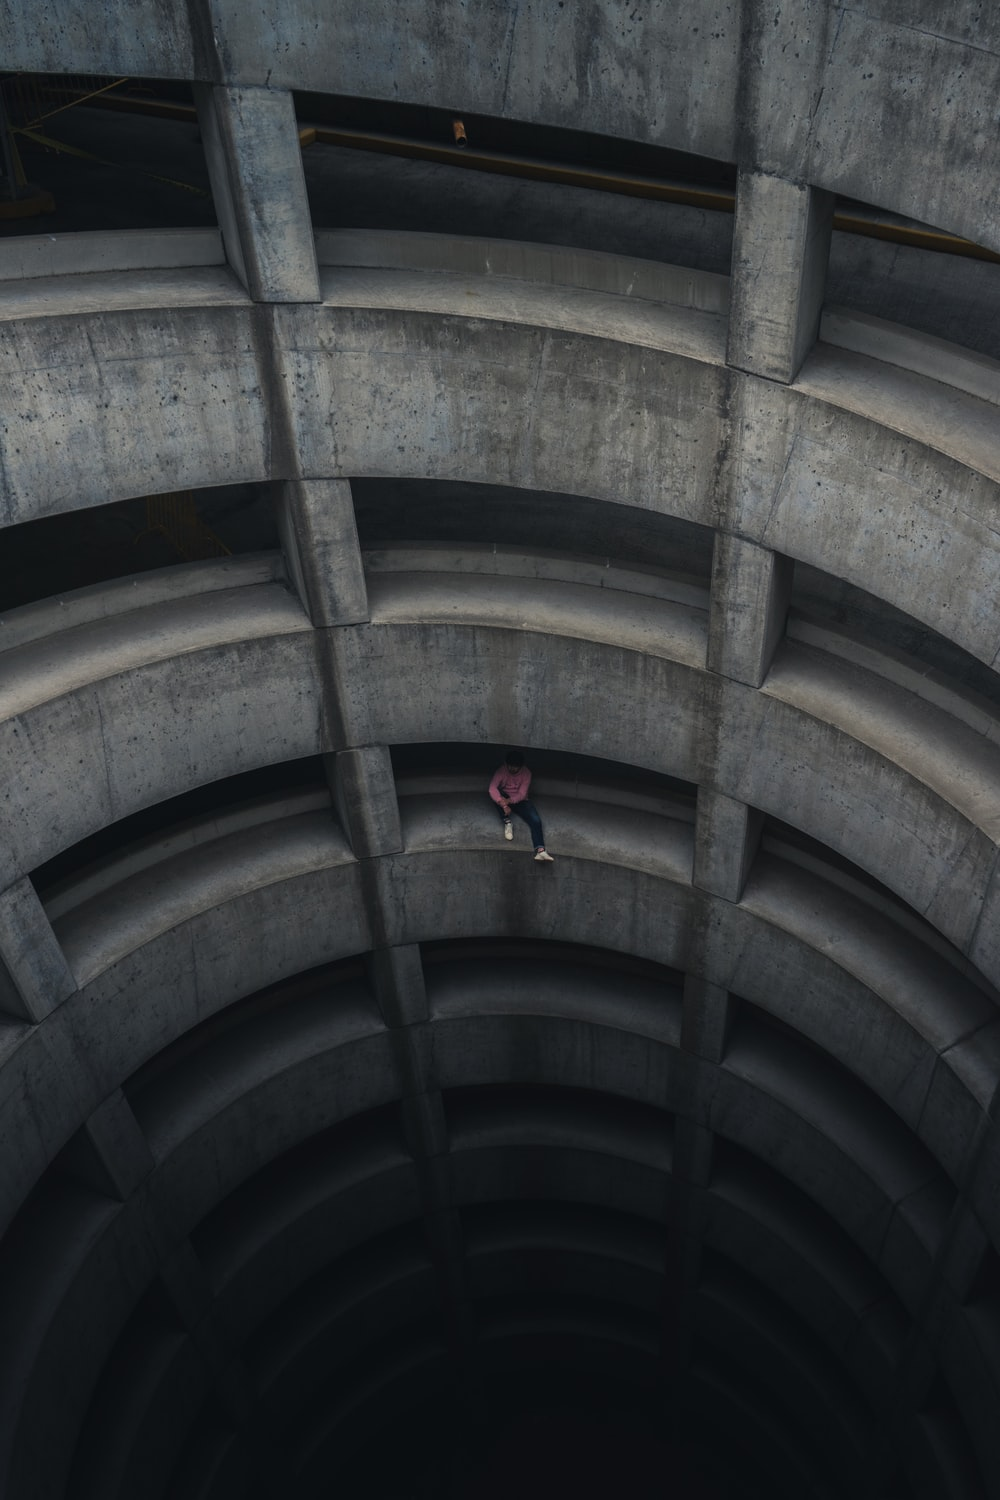 person in red jacket walking on brown tunnel